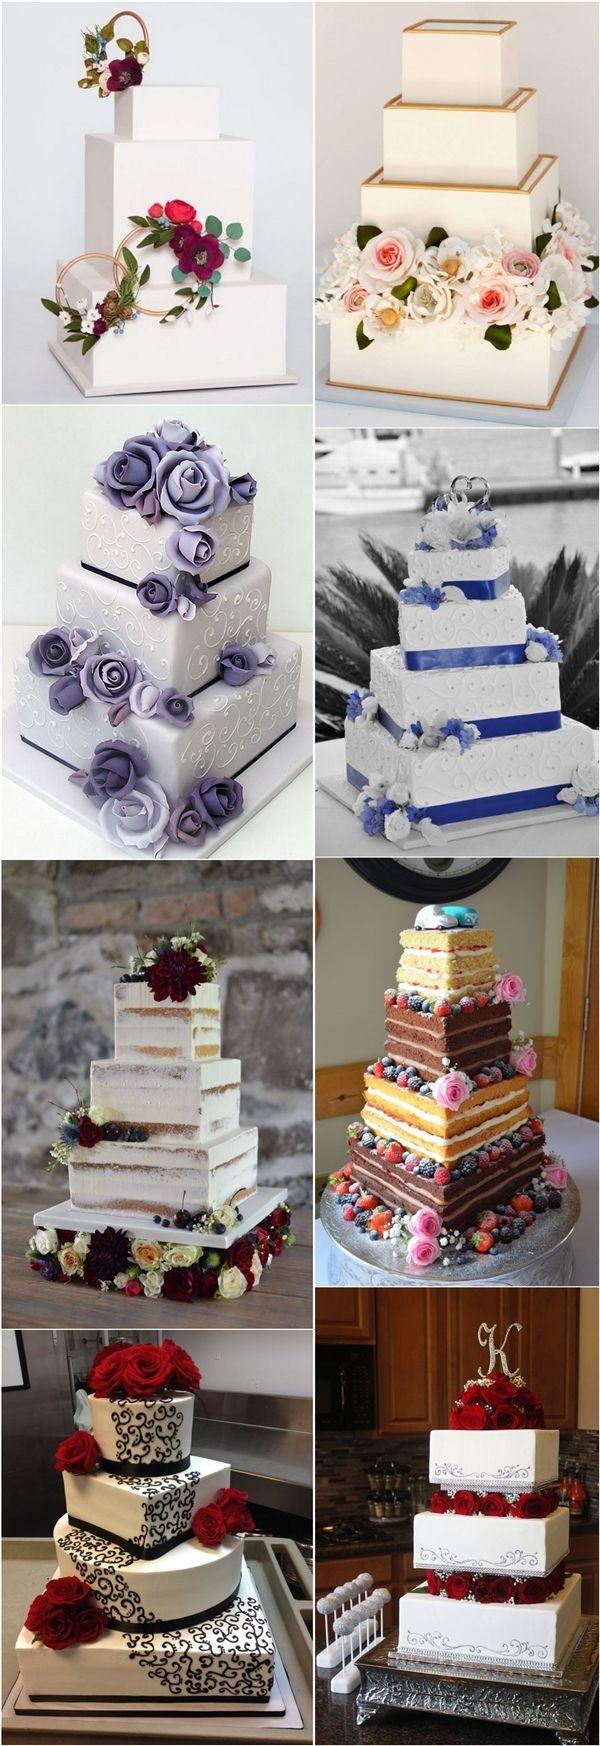 Wedding - Top 20 Square Wedding Cakes That Wow